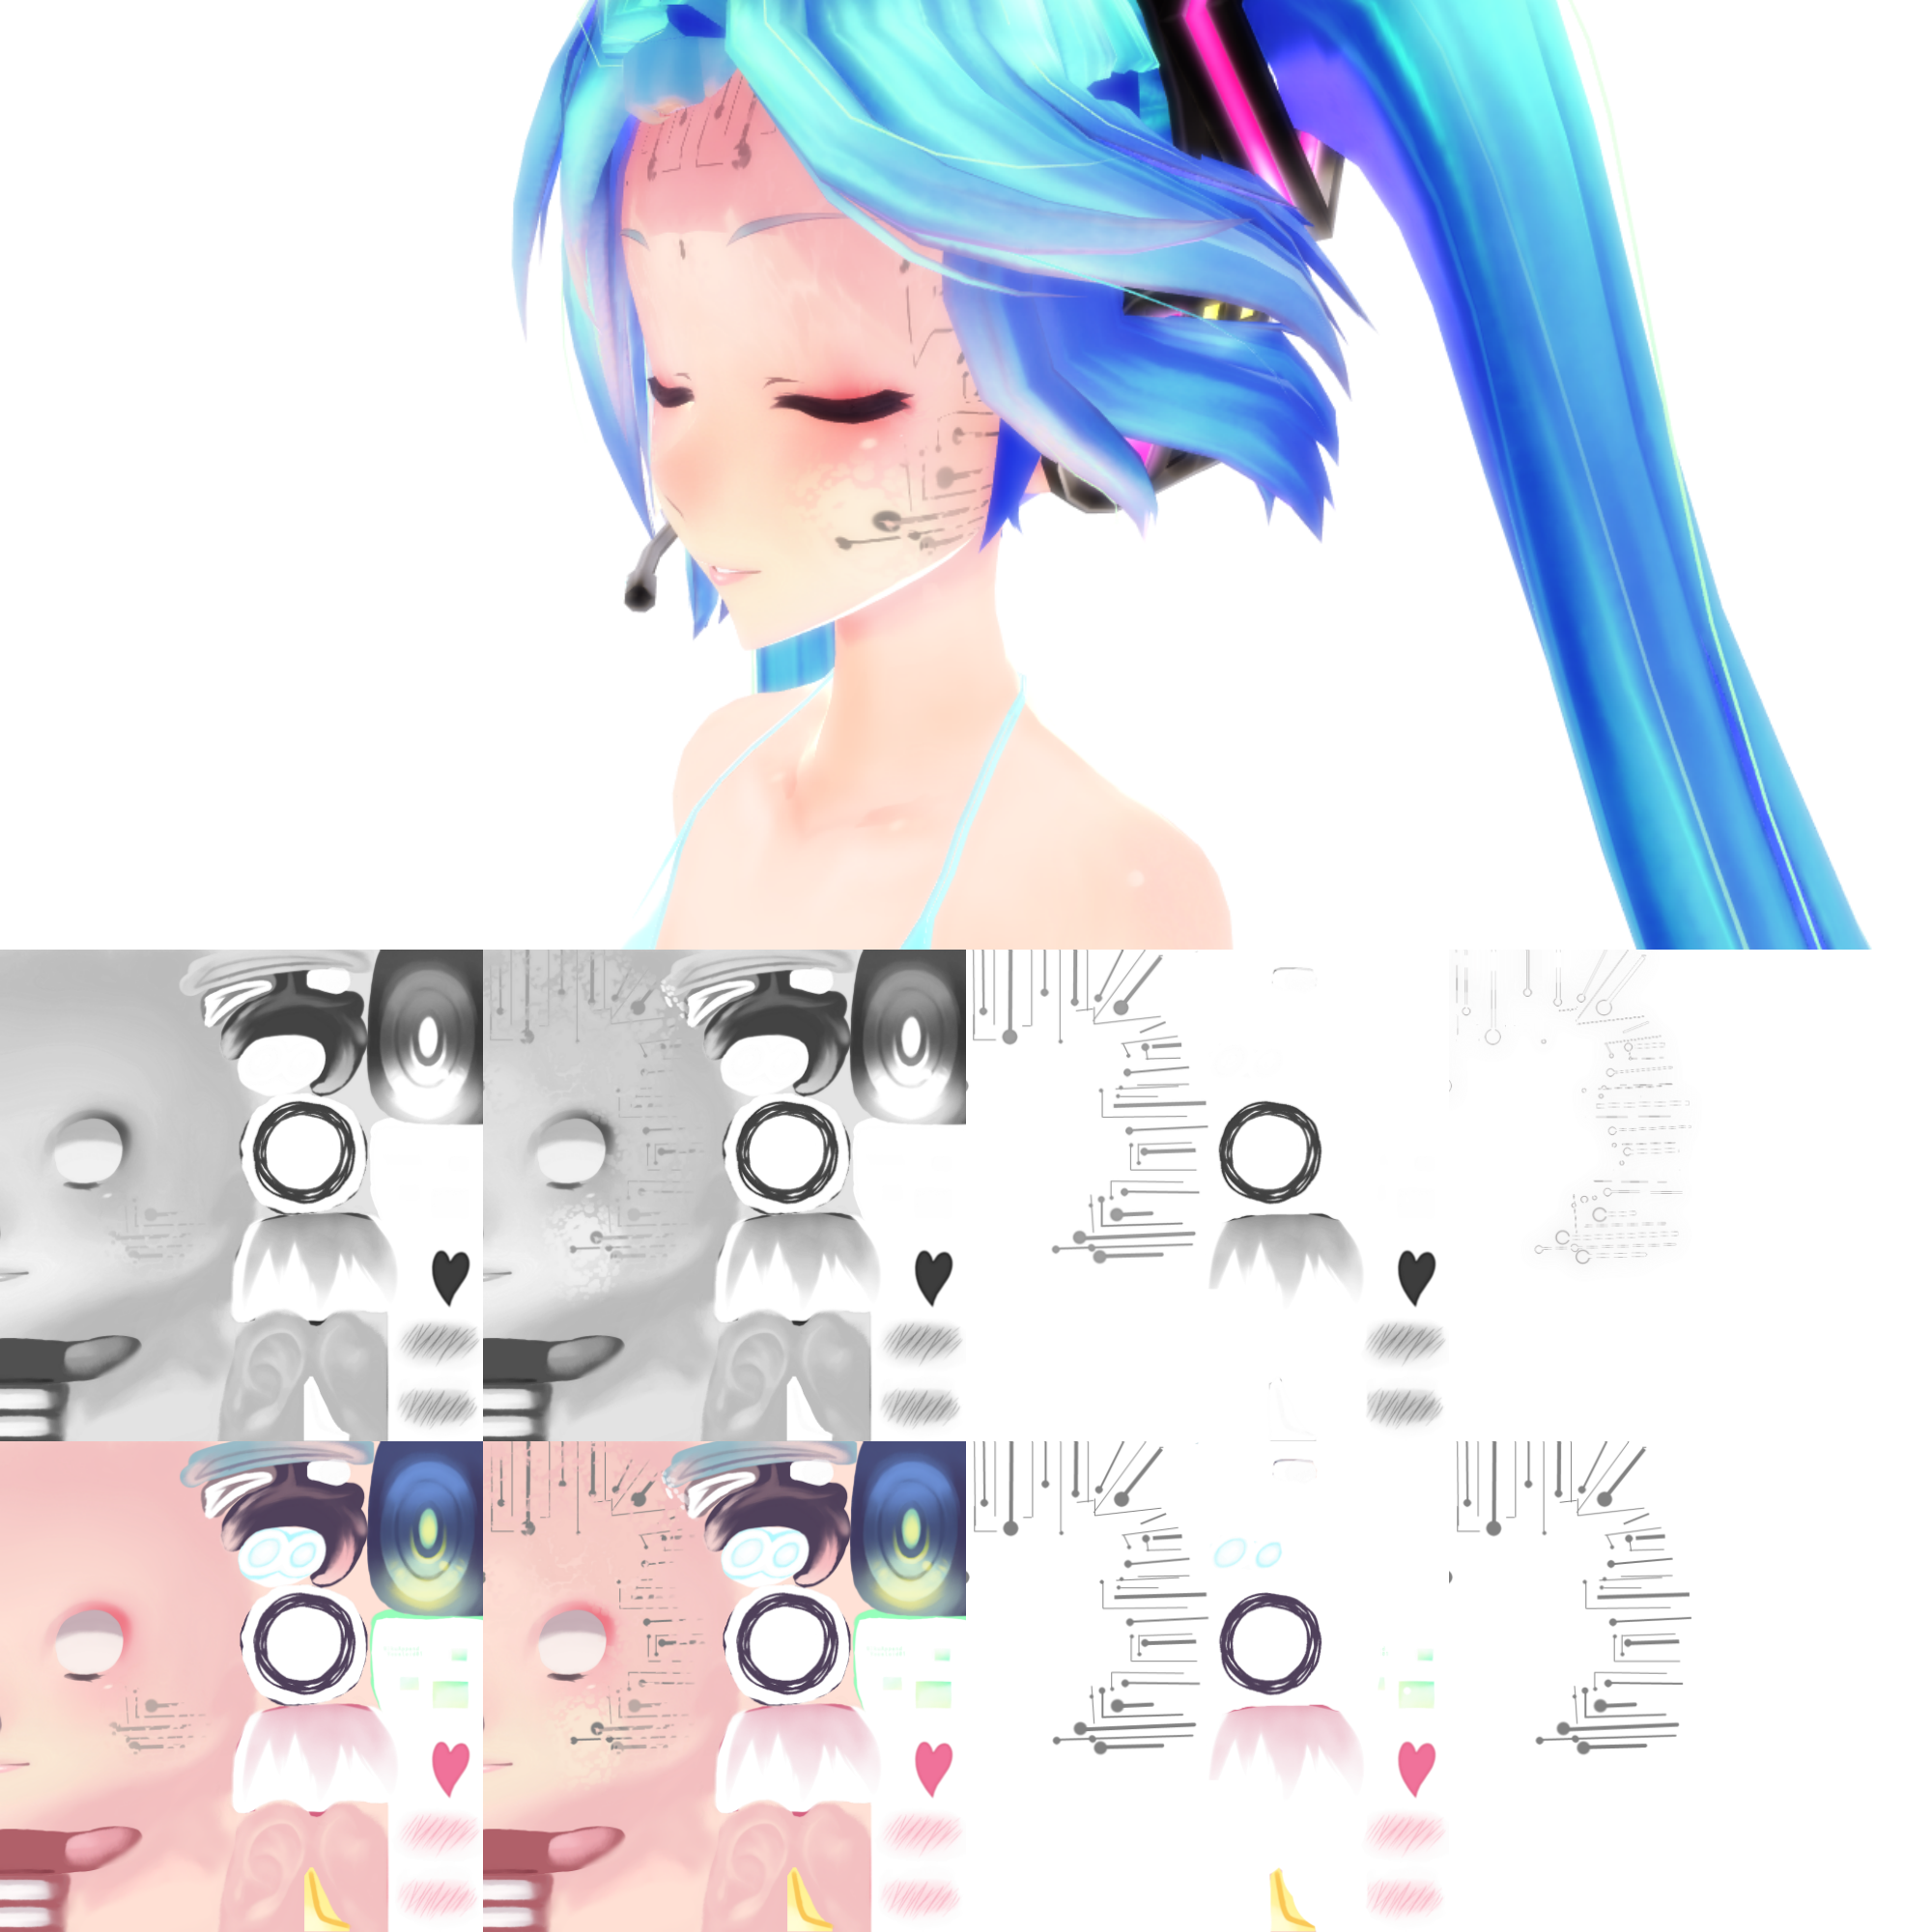 8+ TDA Cyber Skin Face Texture by UtauRueCross on DeviantArt